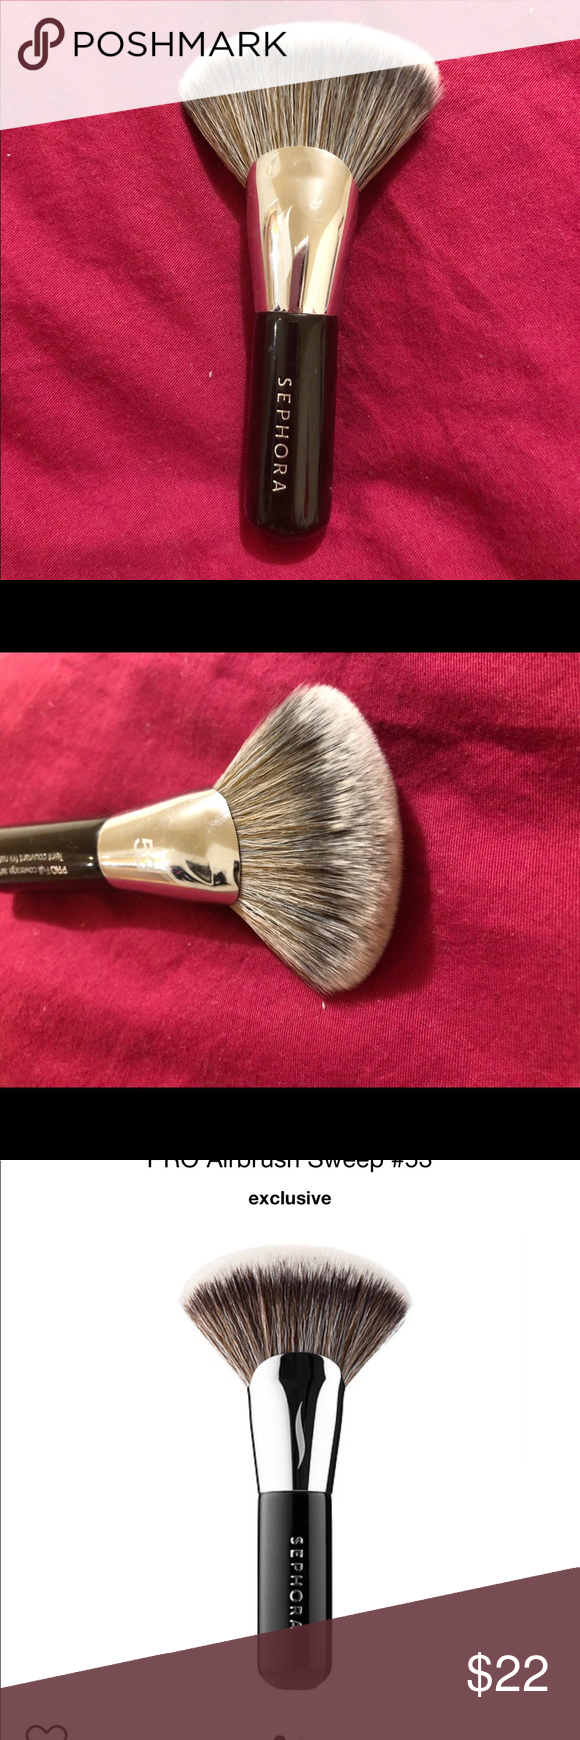 Sephora pro airbrush sweep foundation brush 53 This is a